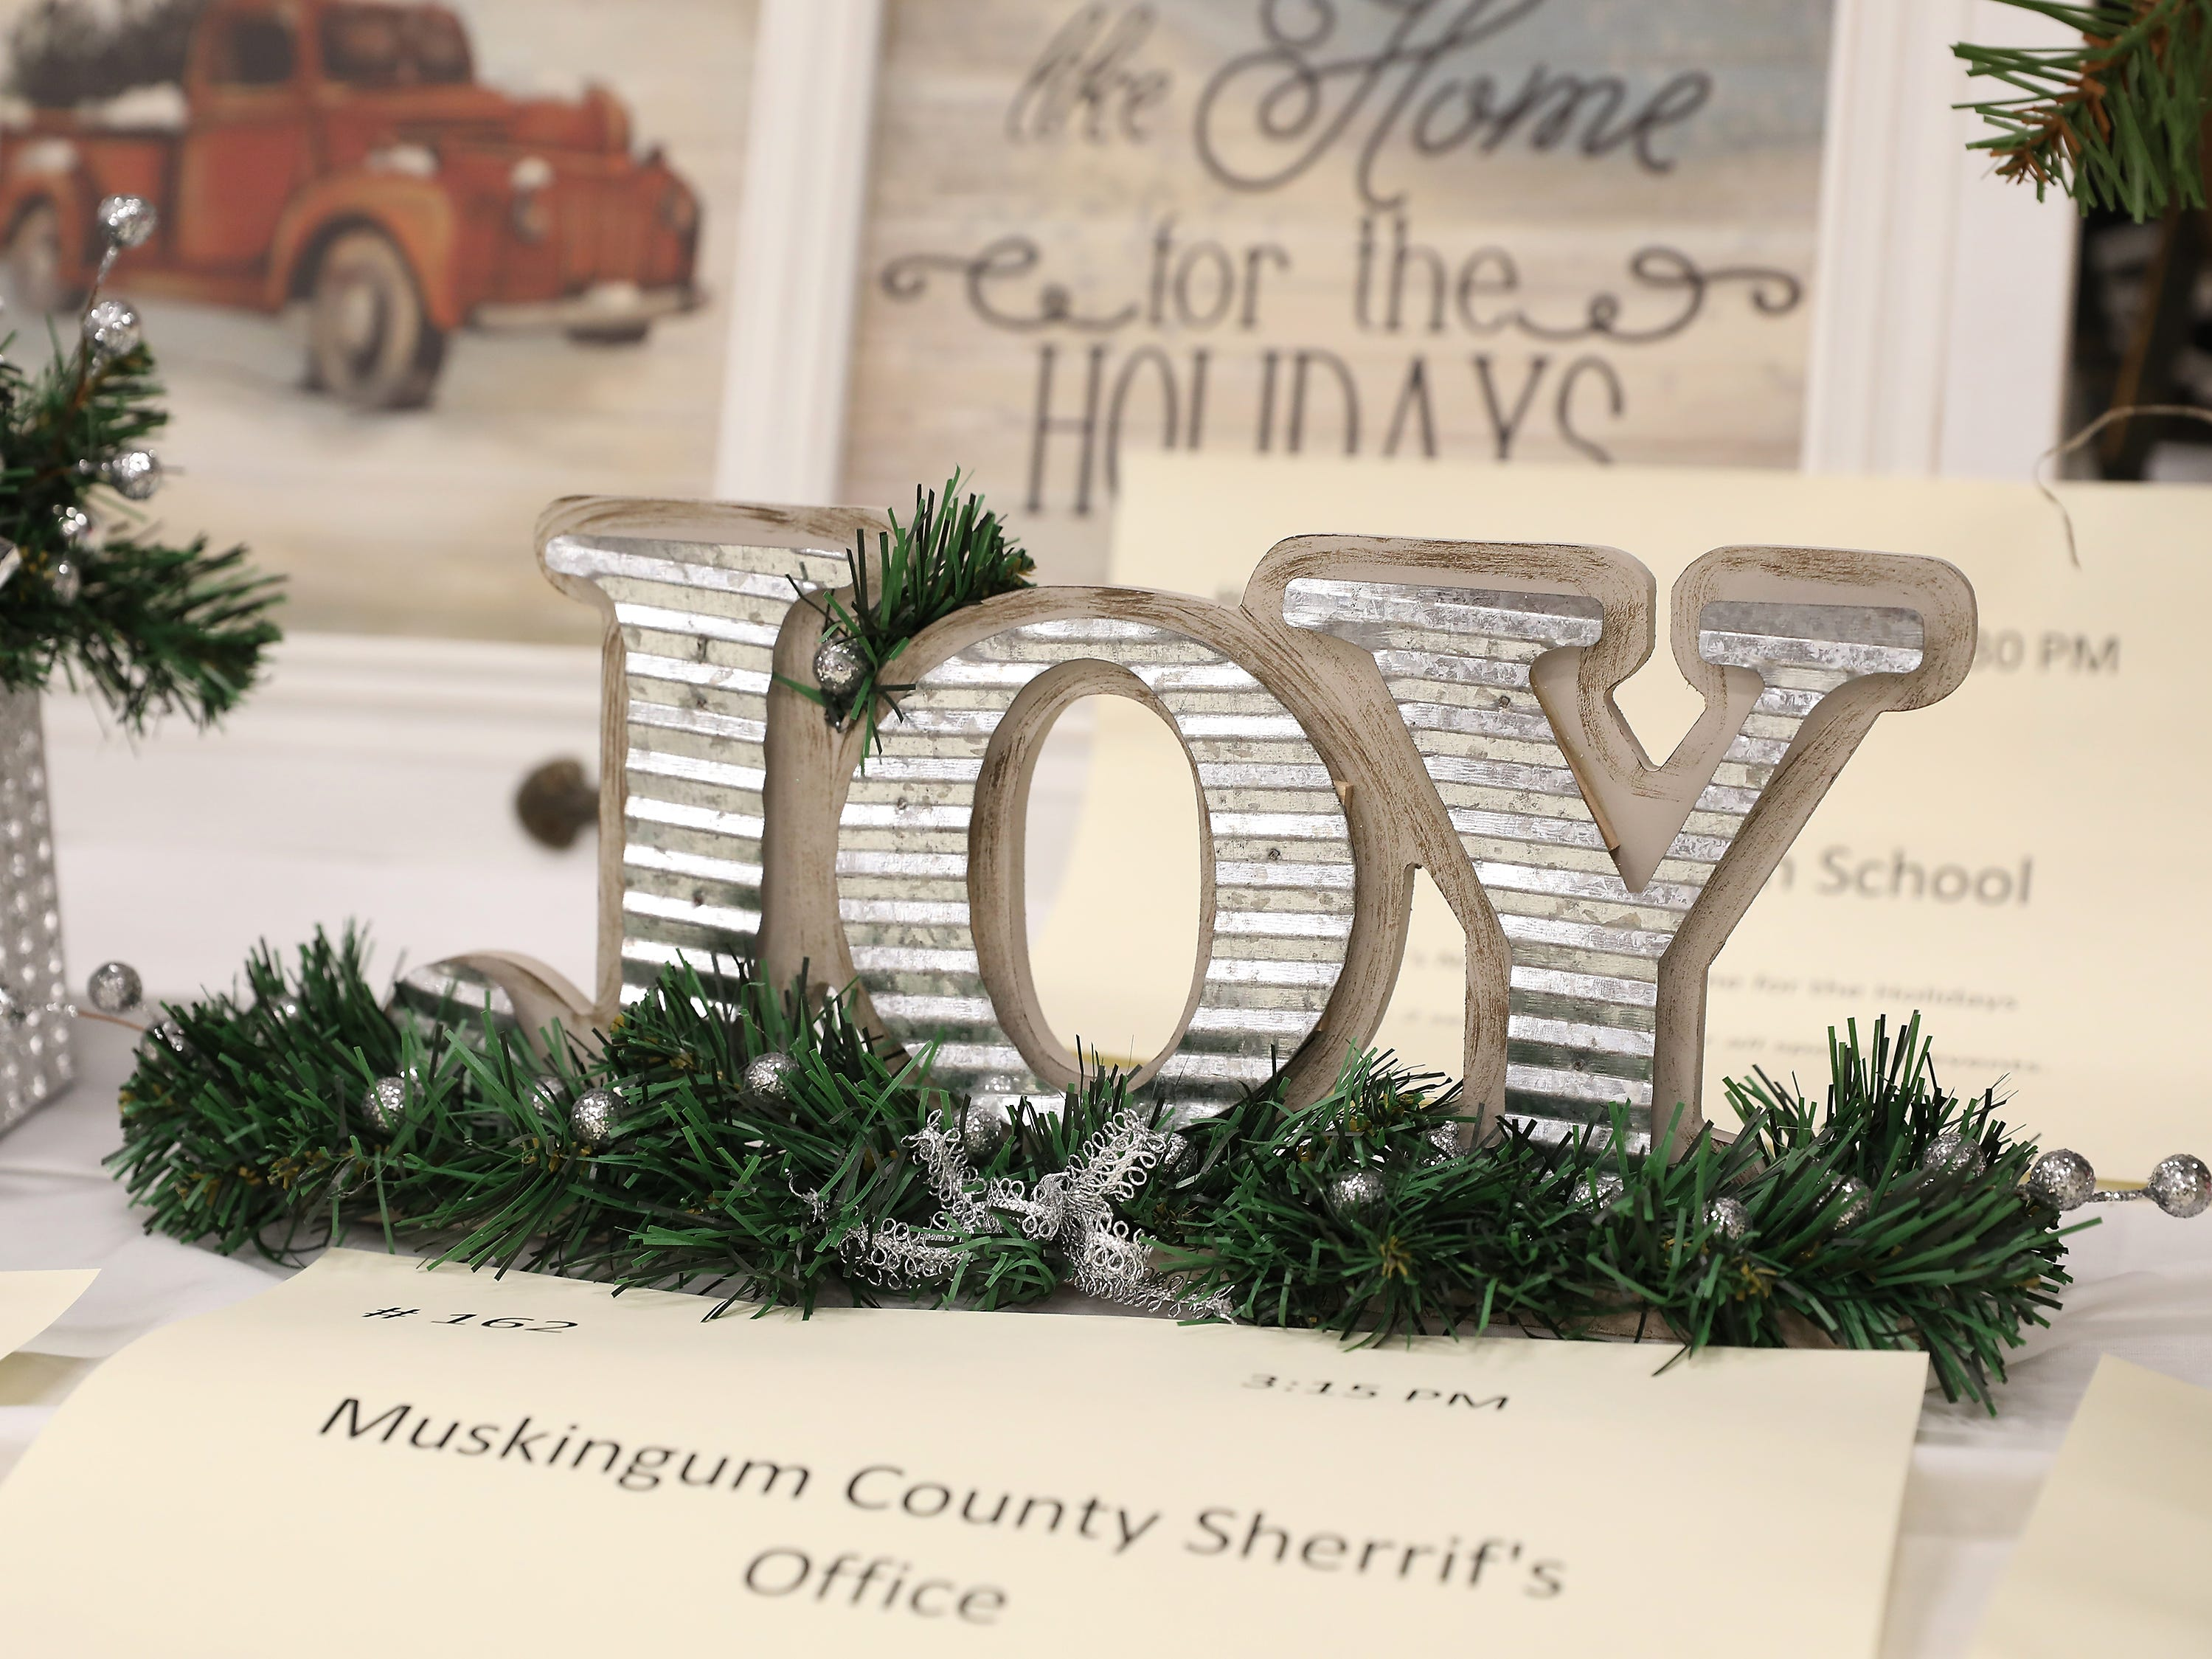 """1623:15 PMMuskingum County Sherrif's OfficeOtherFarmhouse JoyA farmhouse country Christmas joy tabletop accent featuring corrugated metal spelling out """"Joy"""" with pine and red berries to add a burst of color!  Let your holidays be filled with Joy.K-9 Ride to School"""